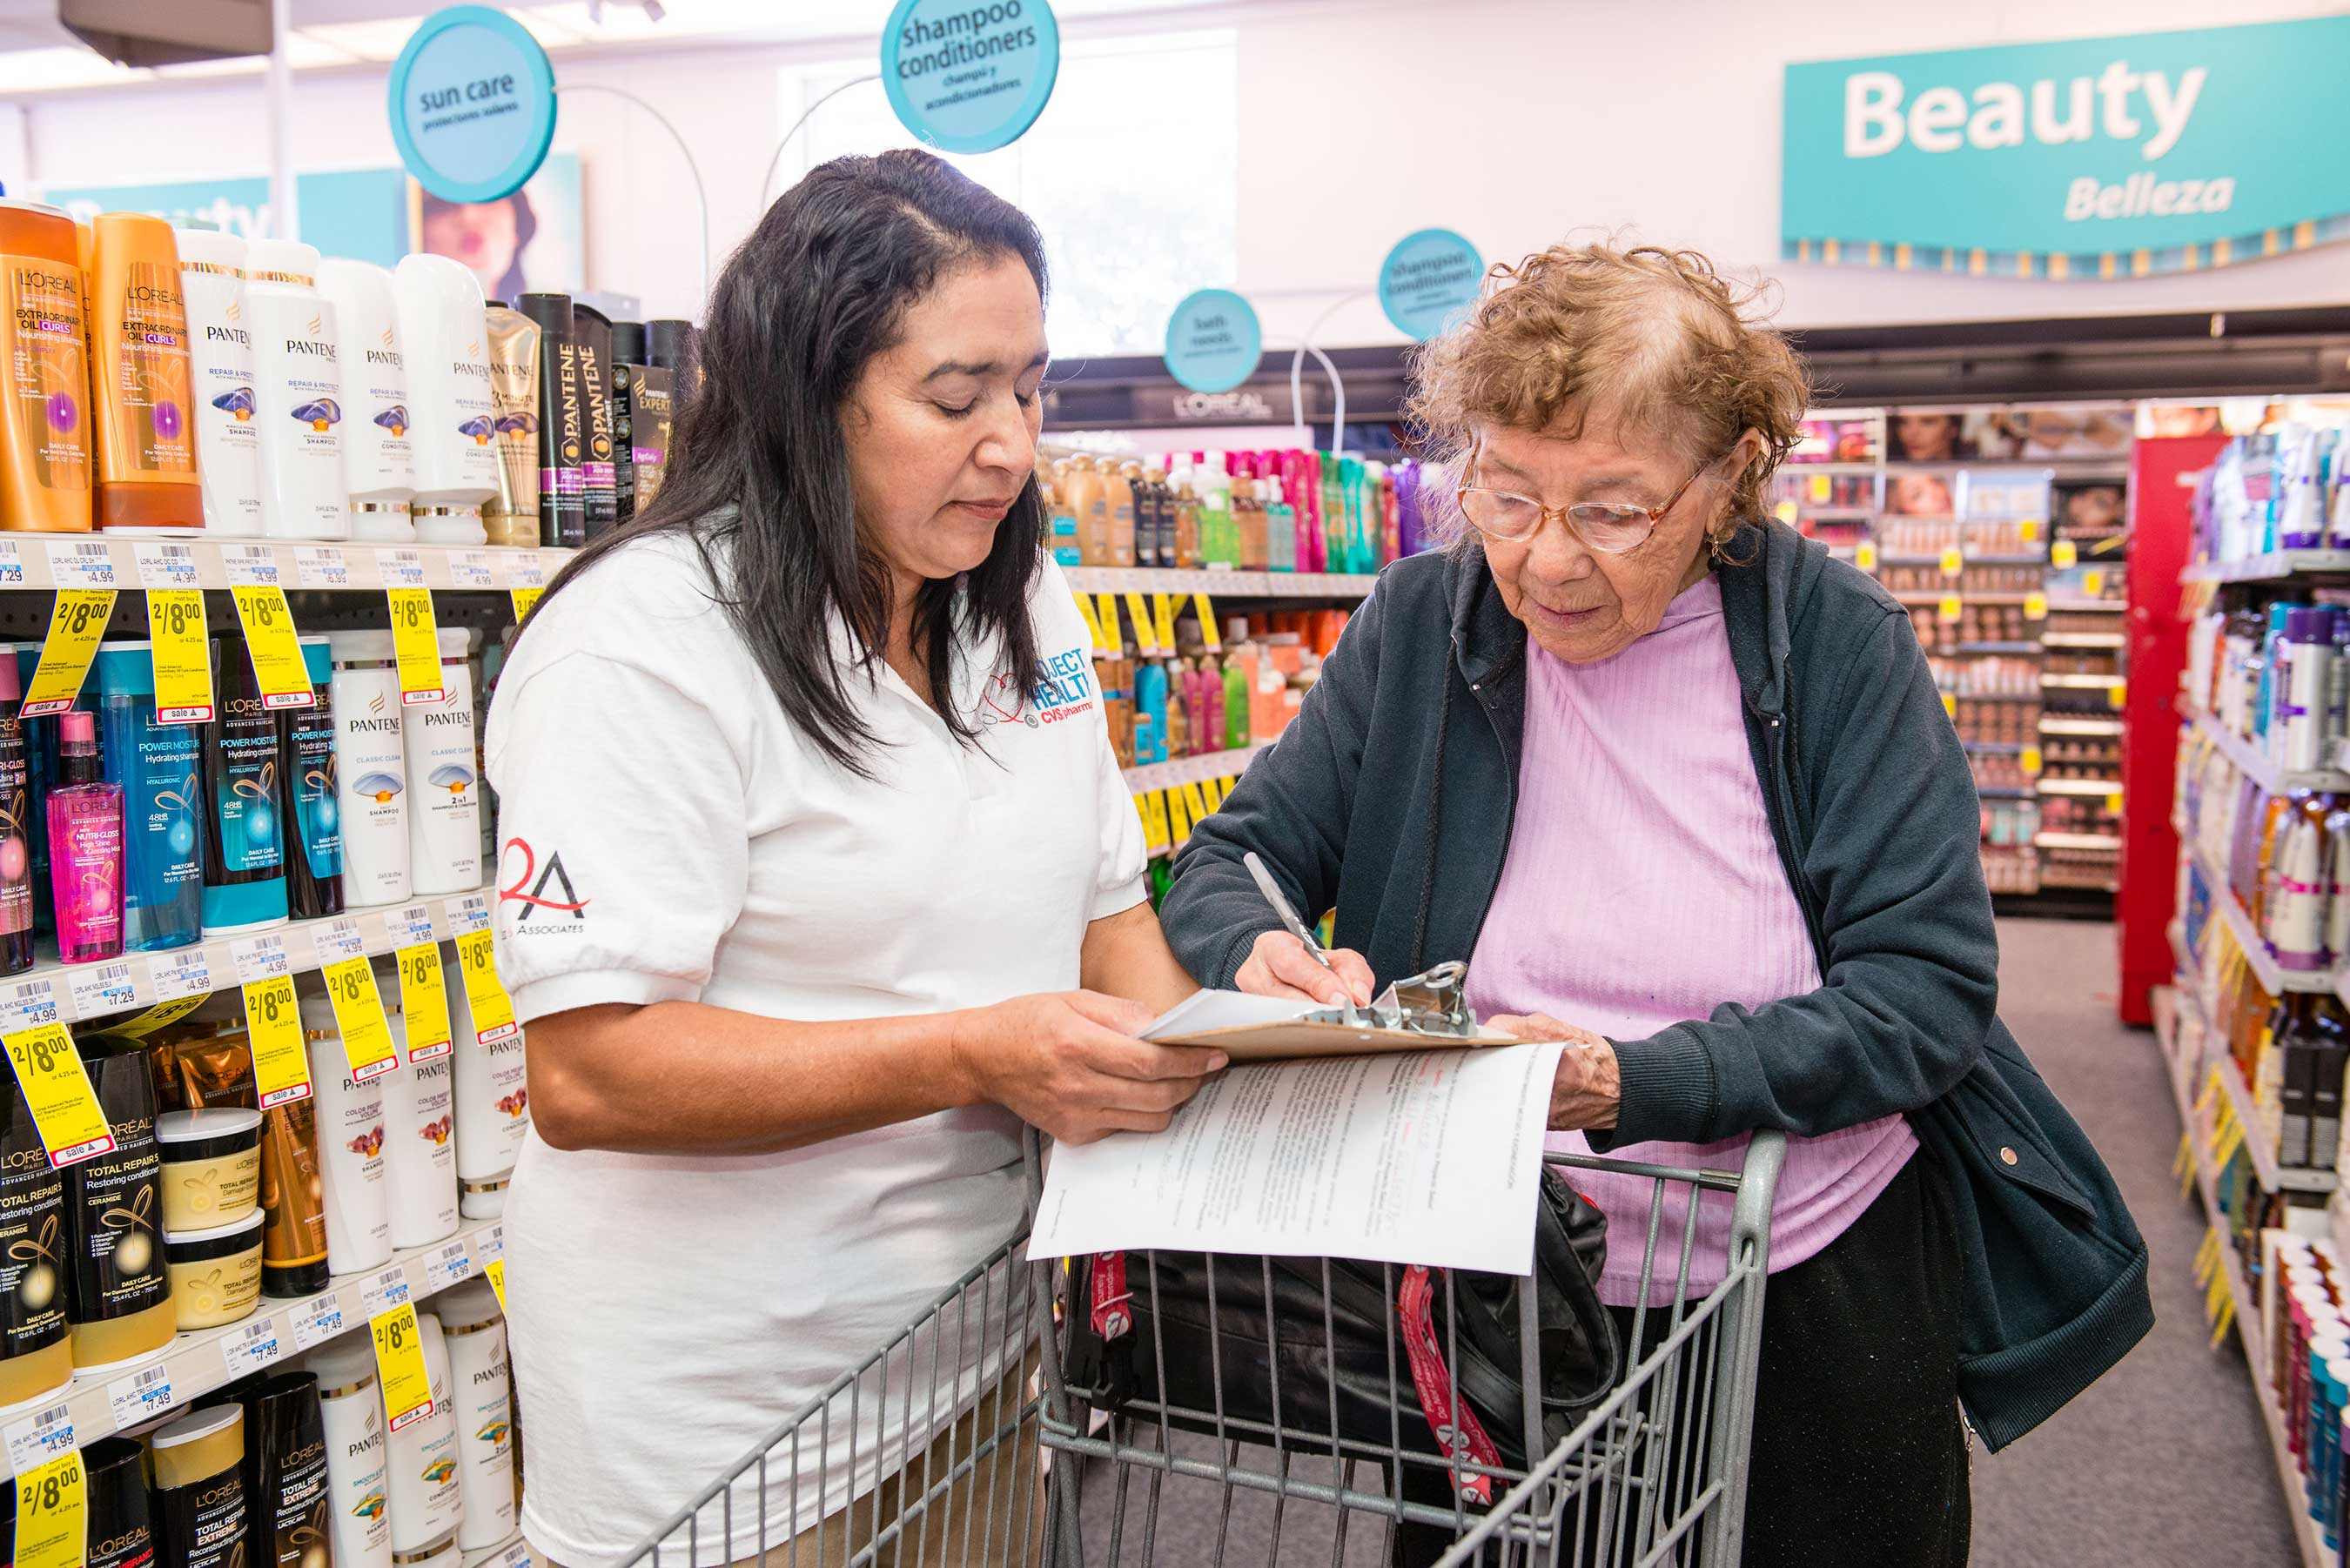 CVS Customer Registers for Project Health